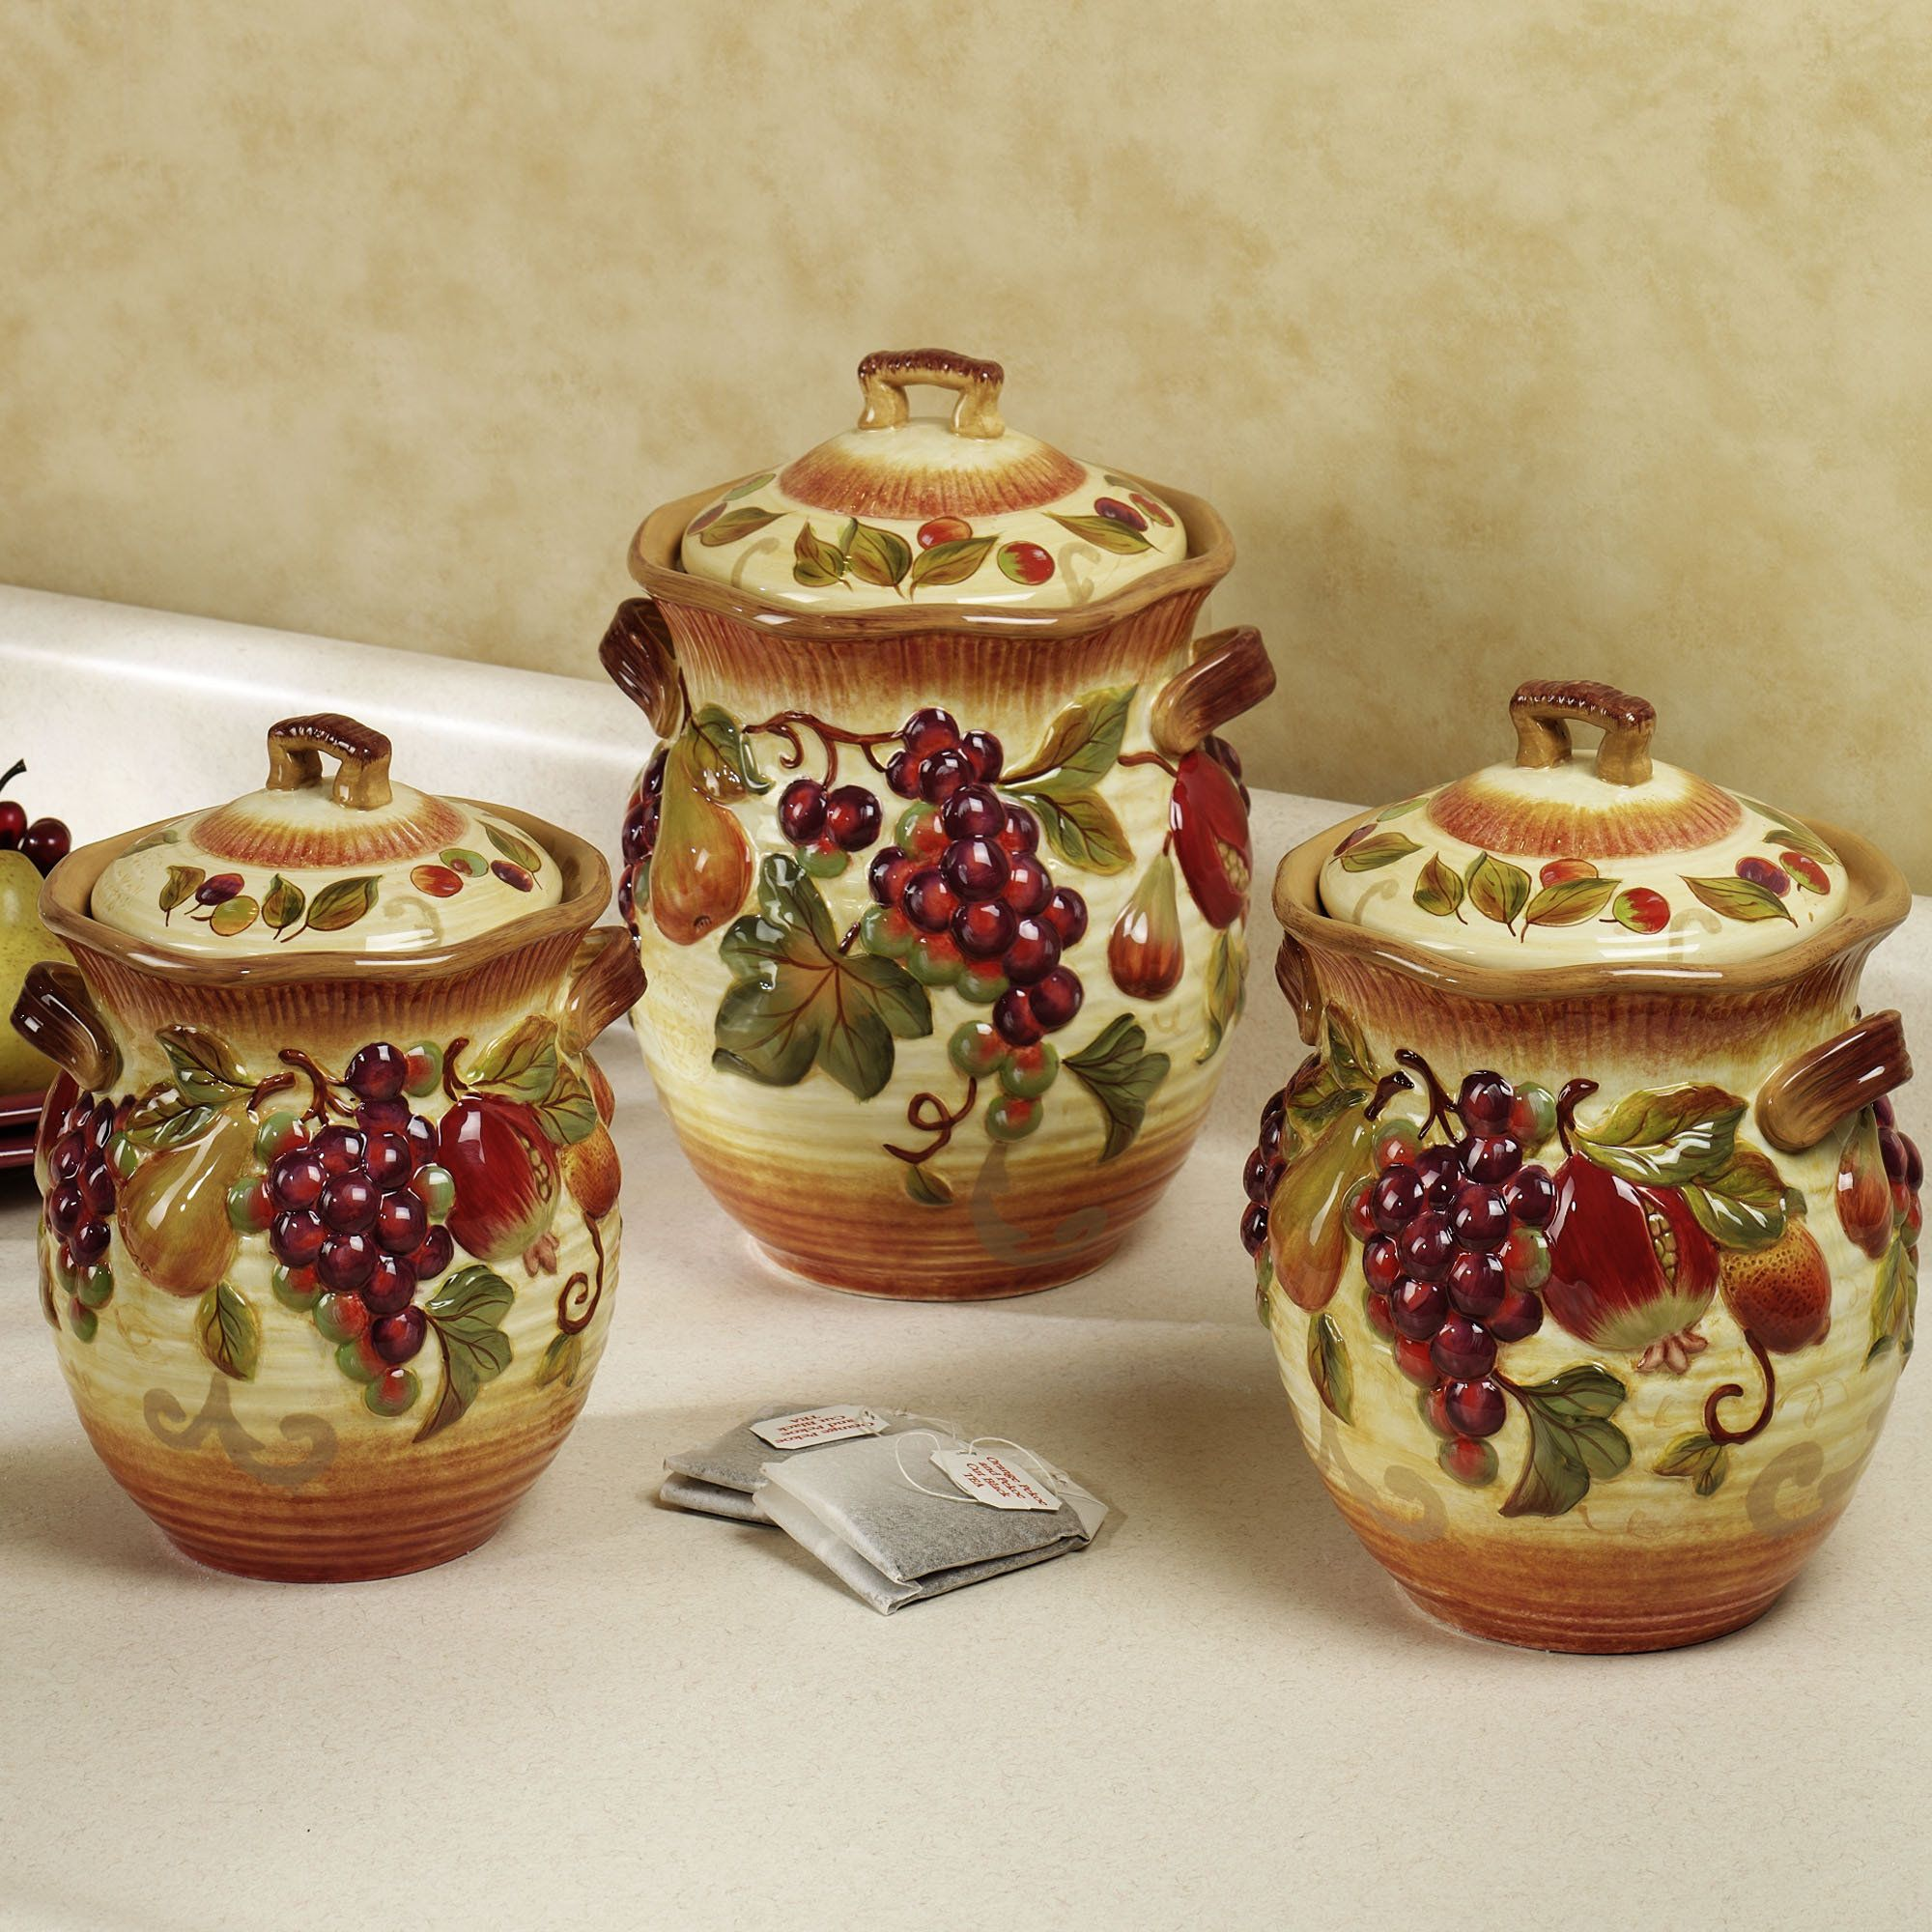 tuscan style dish set  Kitchen Canisters  Iron Furniture